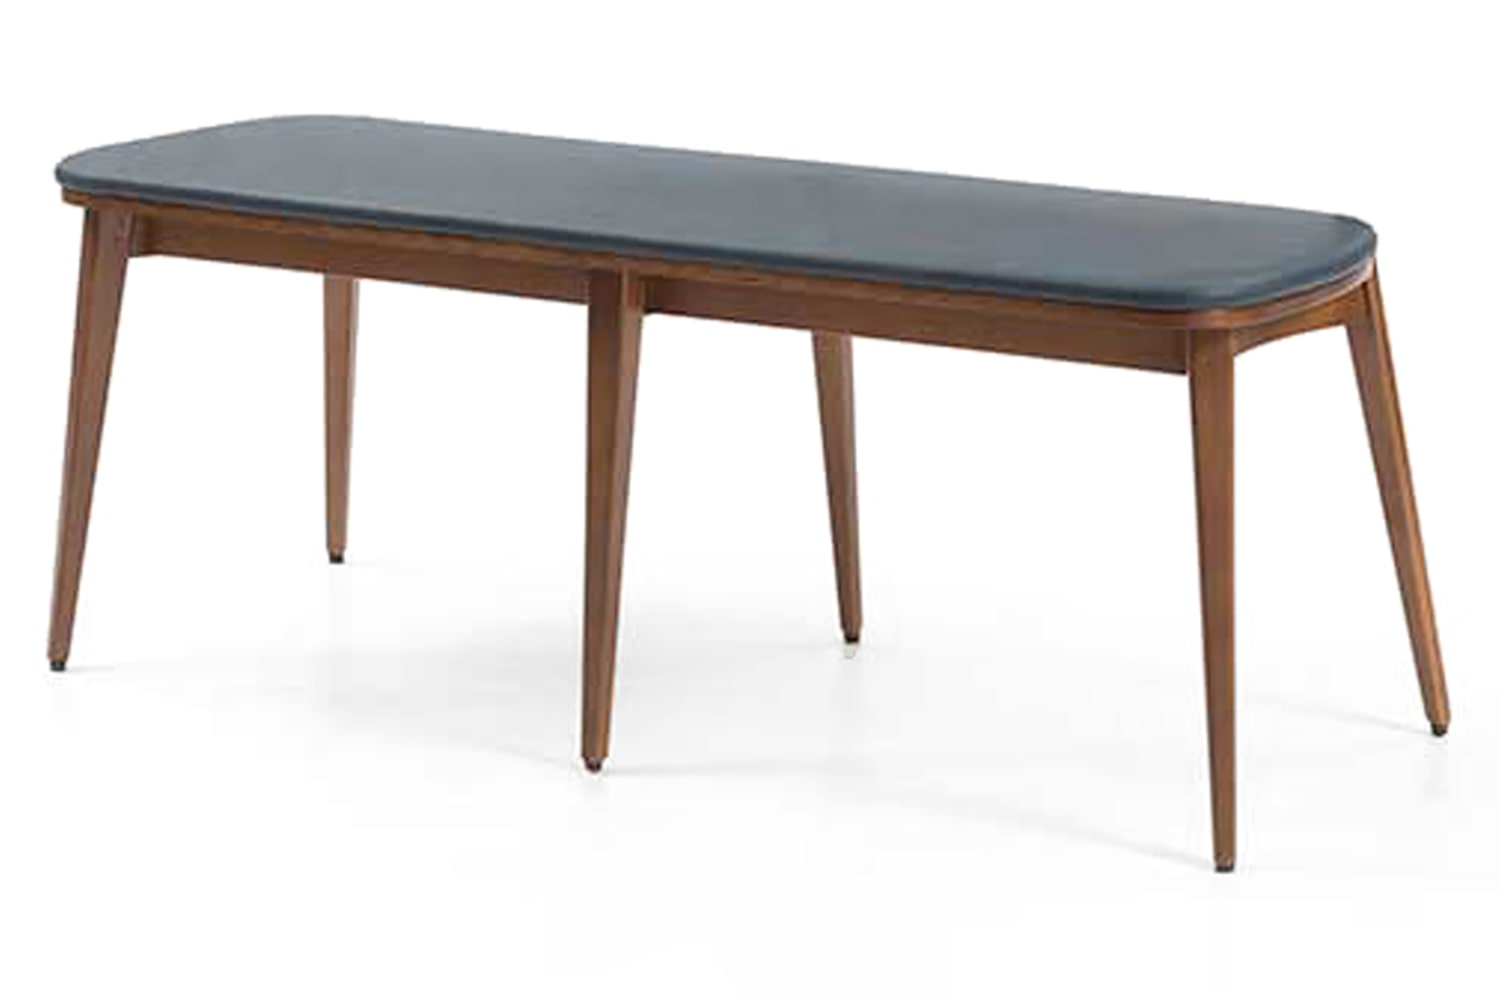 Melanie Bench Long Upholstered Bench Table Place Chairs